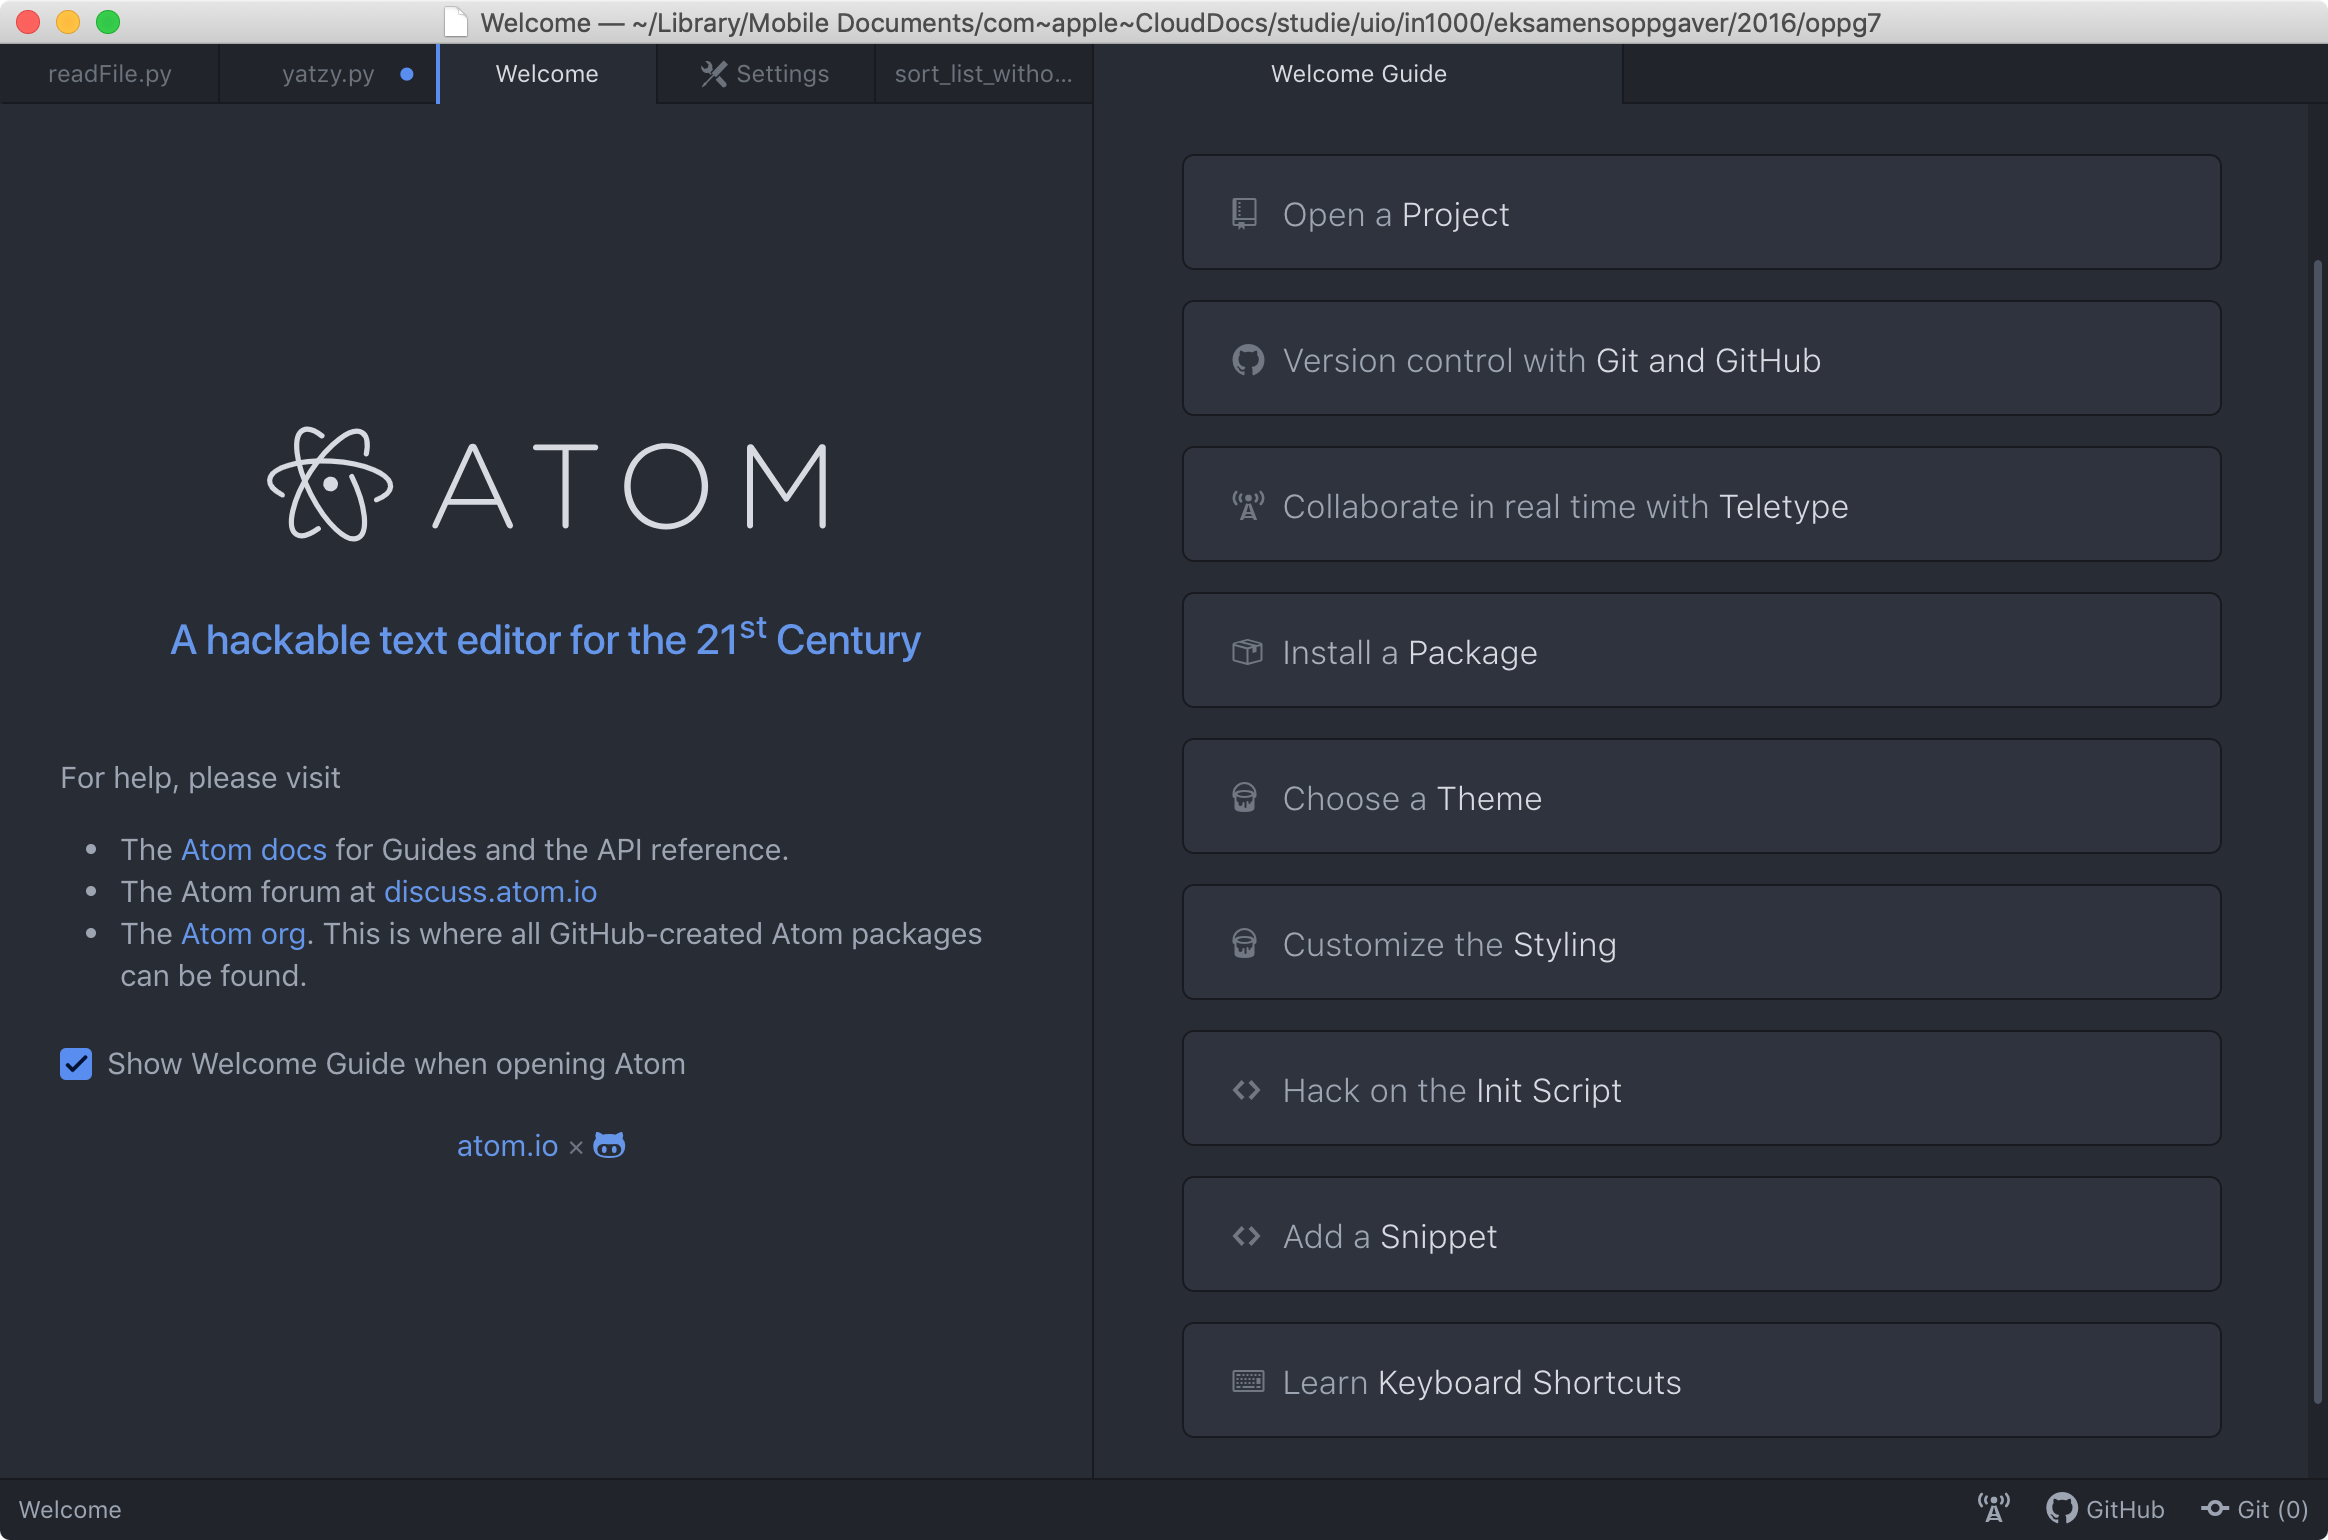 screen shot of the atom welcome interface